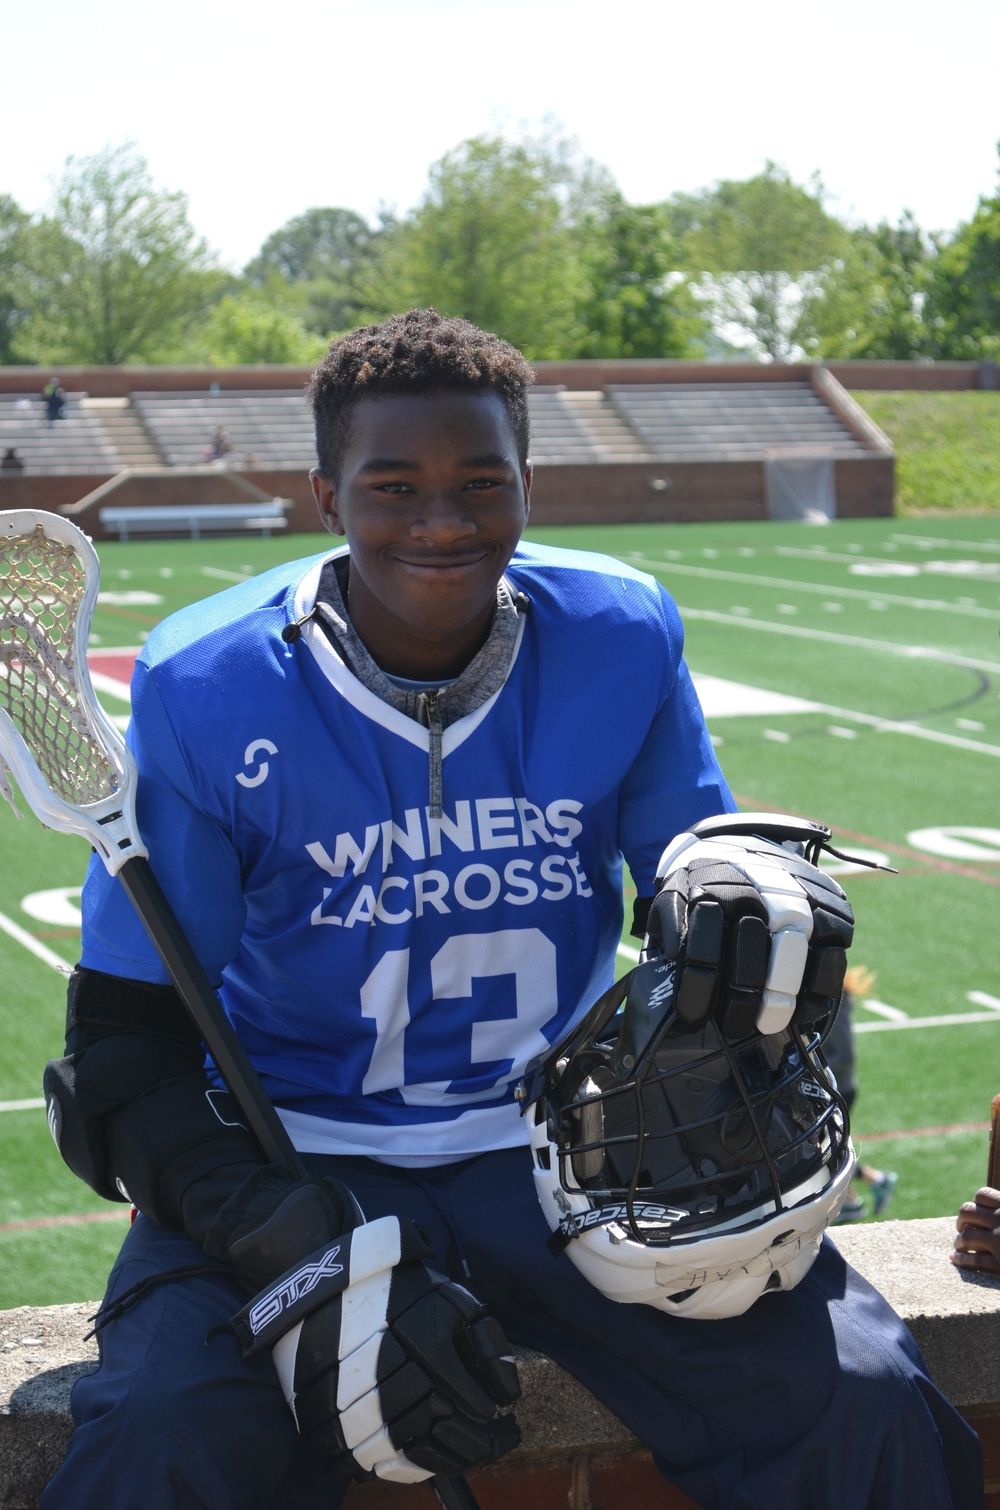 WINNERS Lacrosse Alice Deal Middle School Boys Lacrosse Player